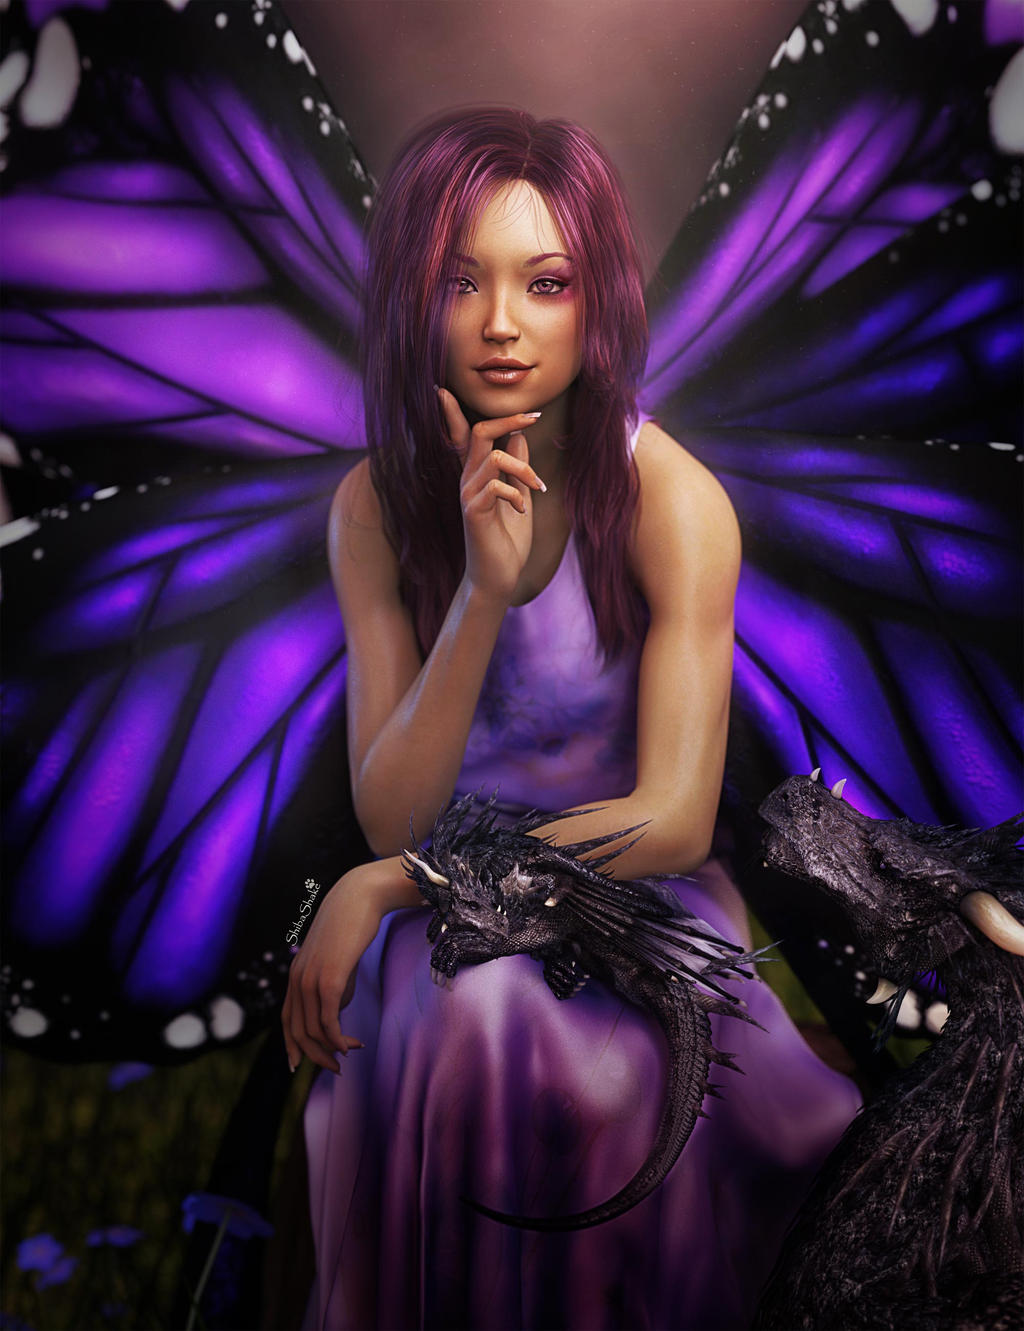 Fantasy butterfly wings - photo#6